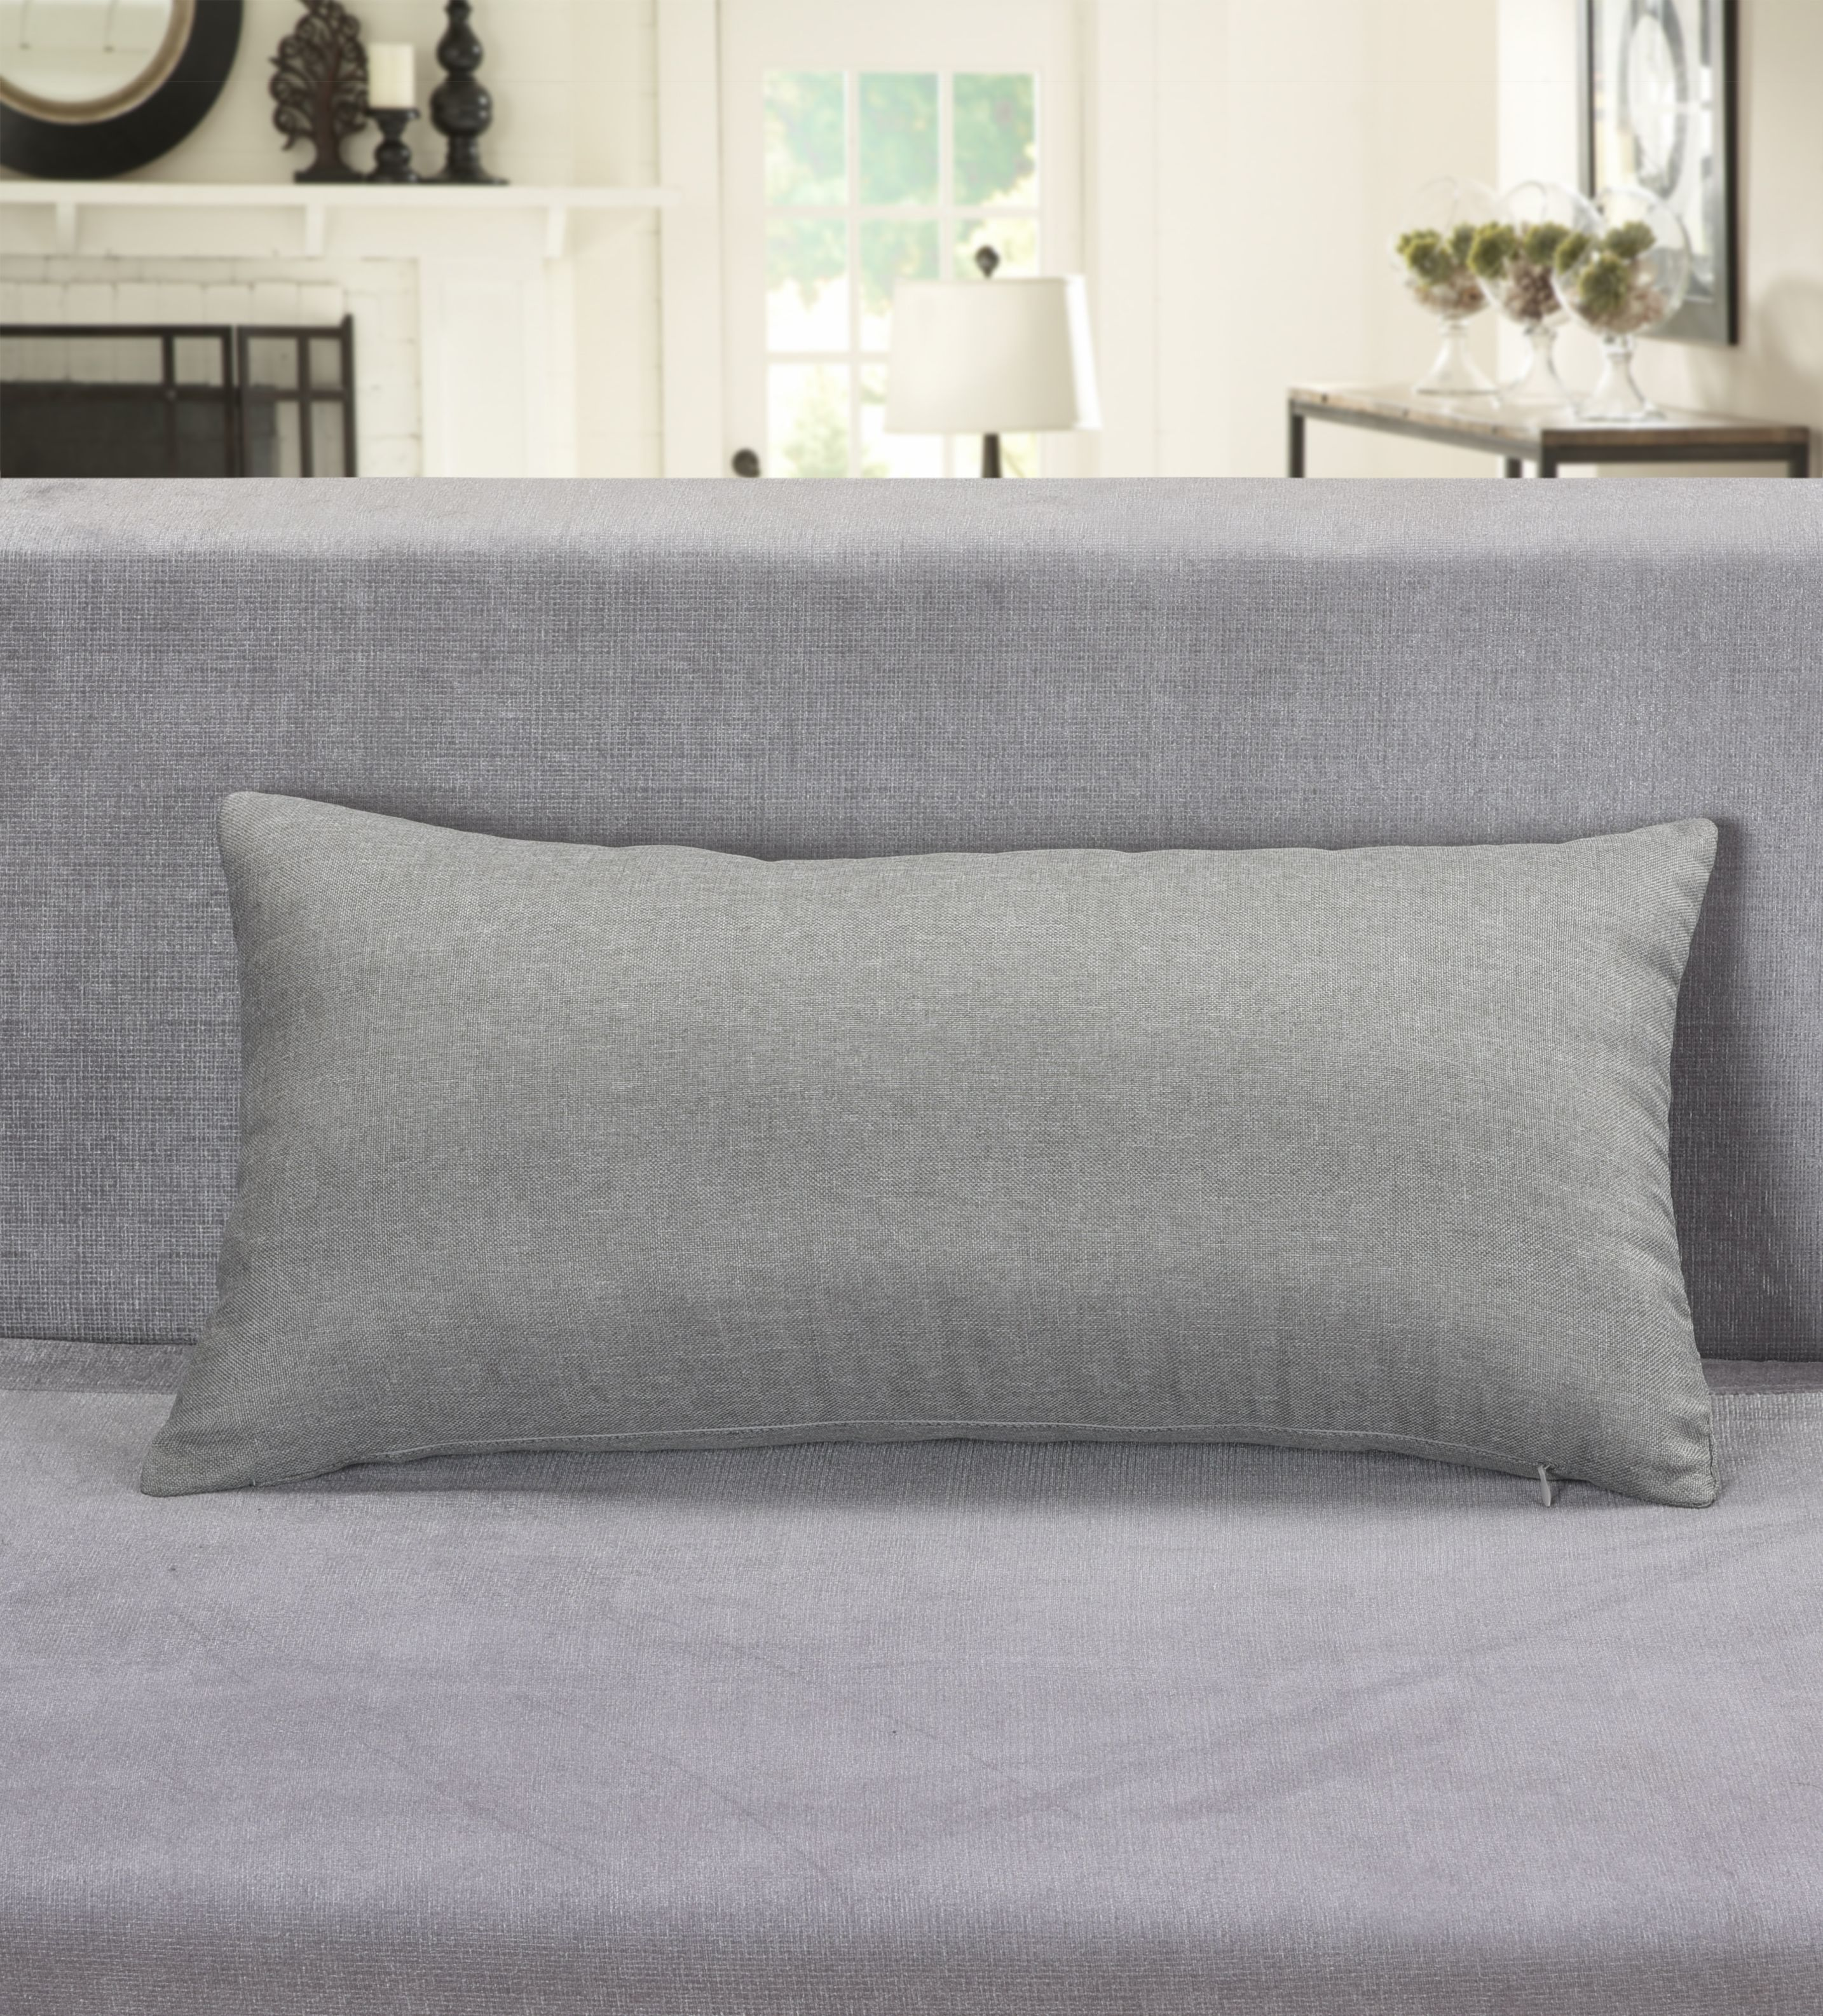 "Aiking Home Breathable Solid Faux Linen Lumbar Throw Pillow Case for Sofa, Bedroom or Car... (12""x24"", Gray)"